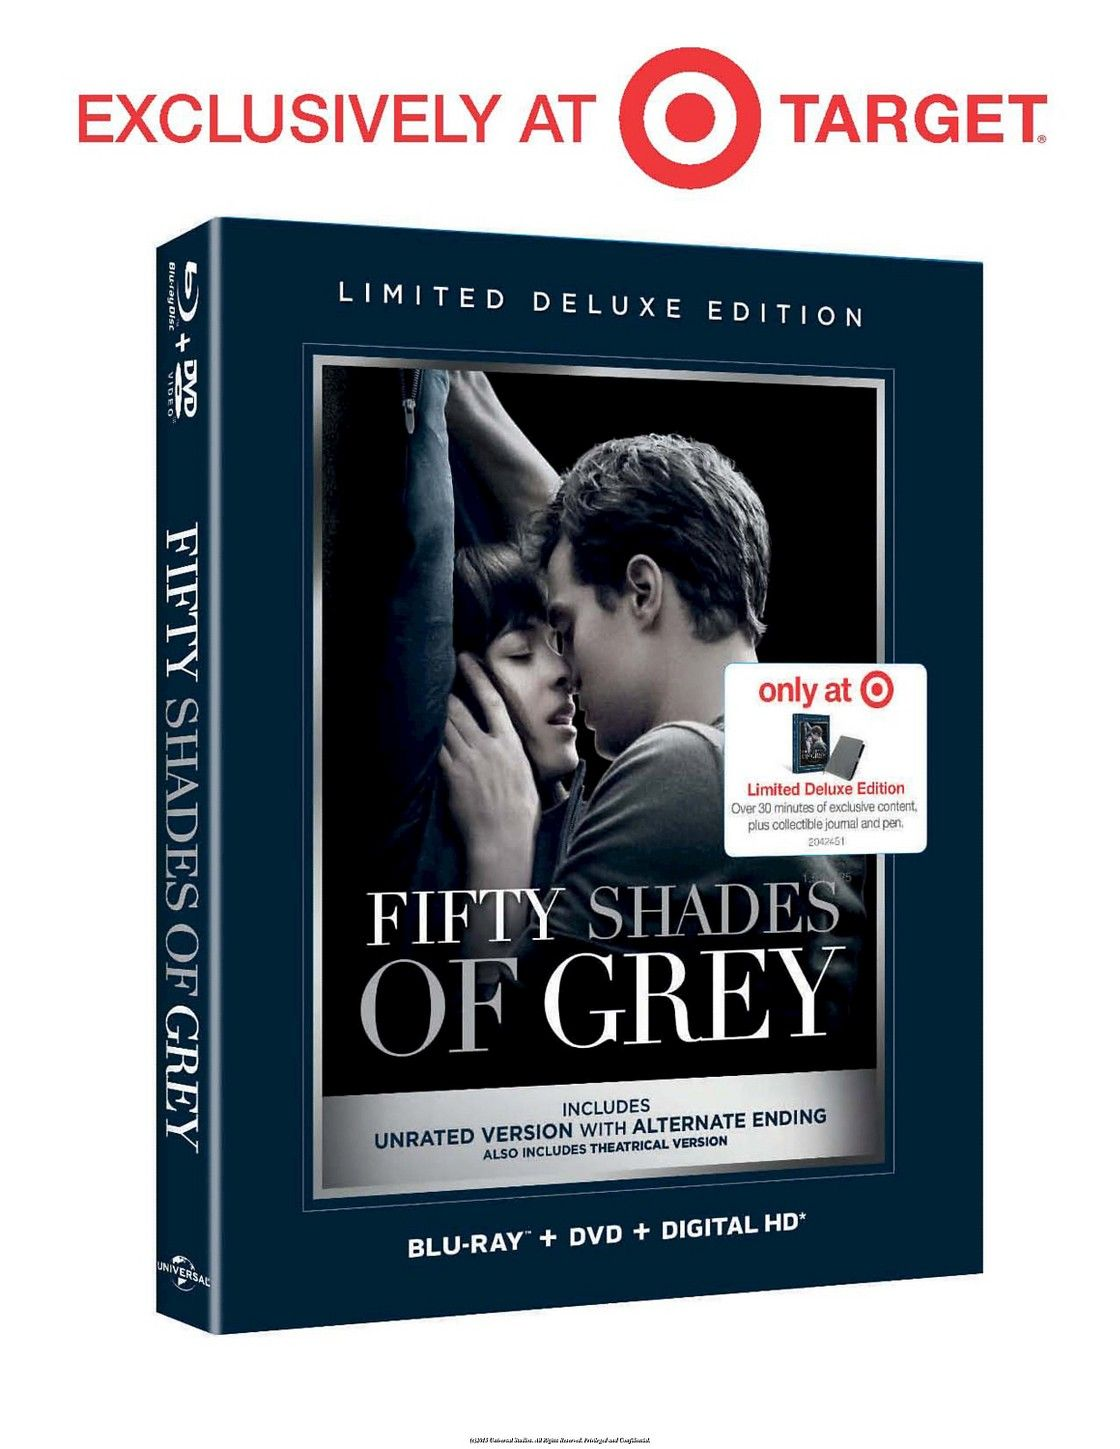 Fifty Shades of Grey (Blu-ray/DVD) - Target Exclusive Deluxe Version   Im so excited!!!